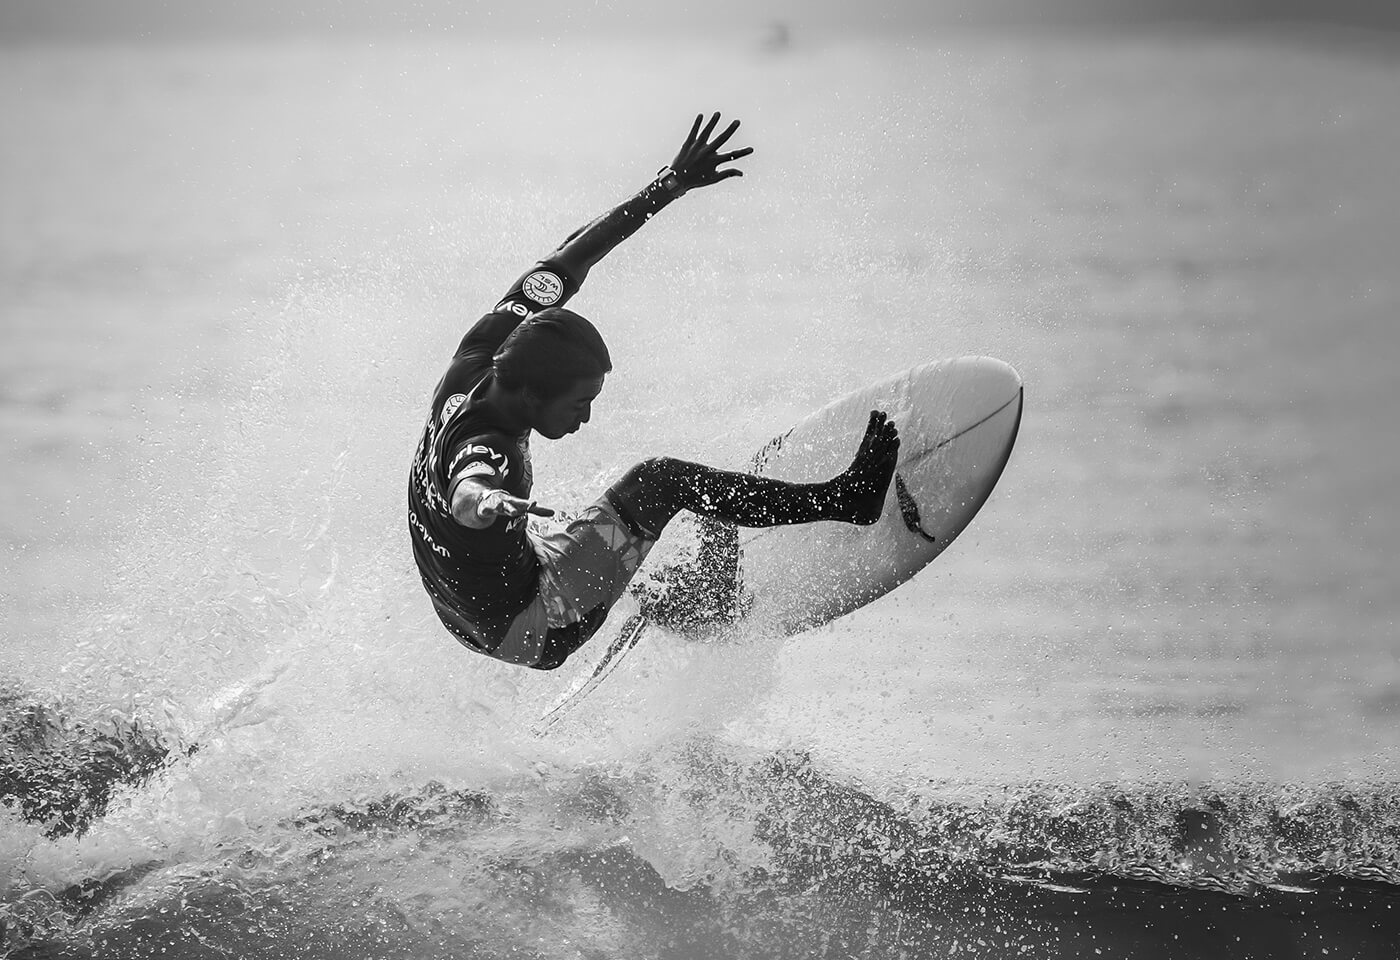 Surf photography workshop at Manly Beach